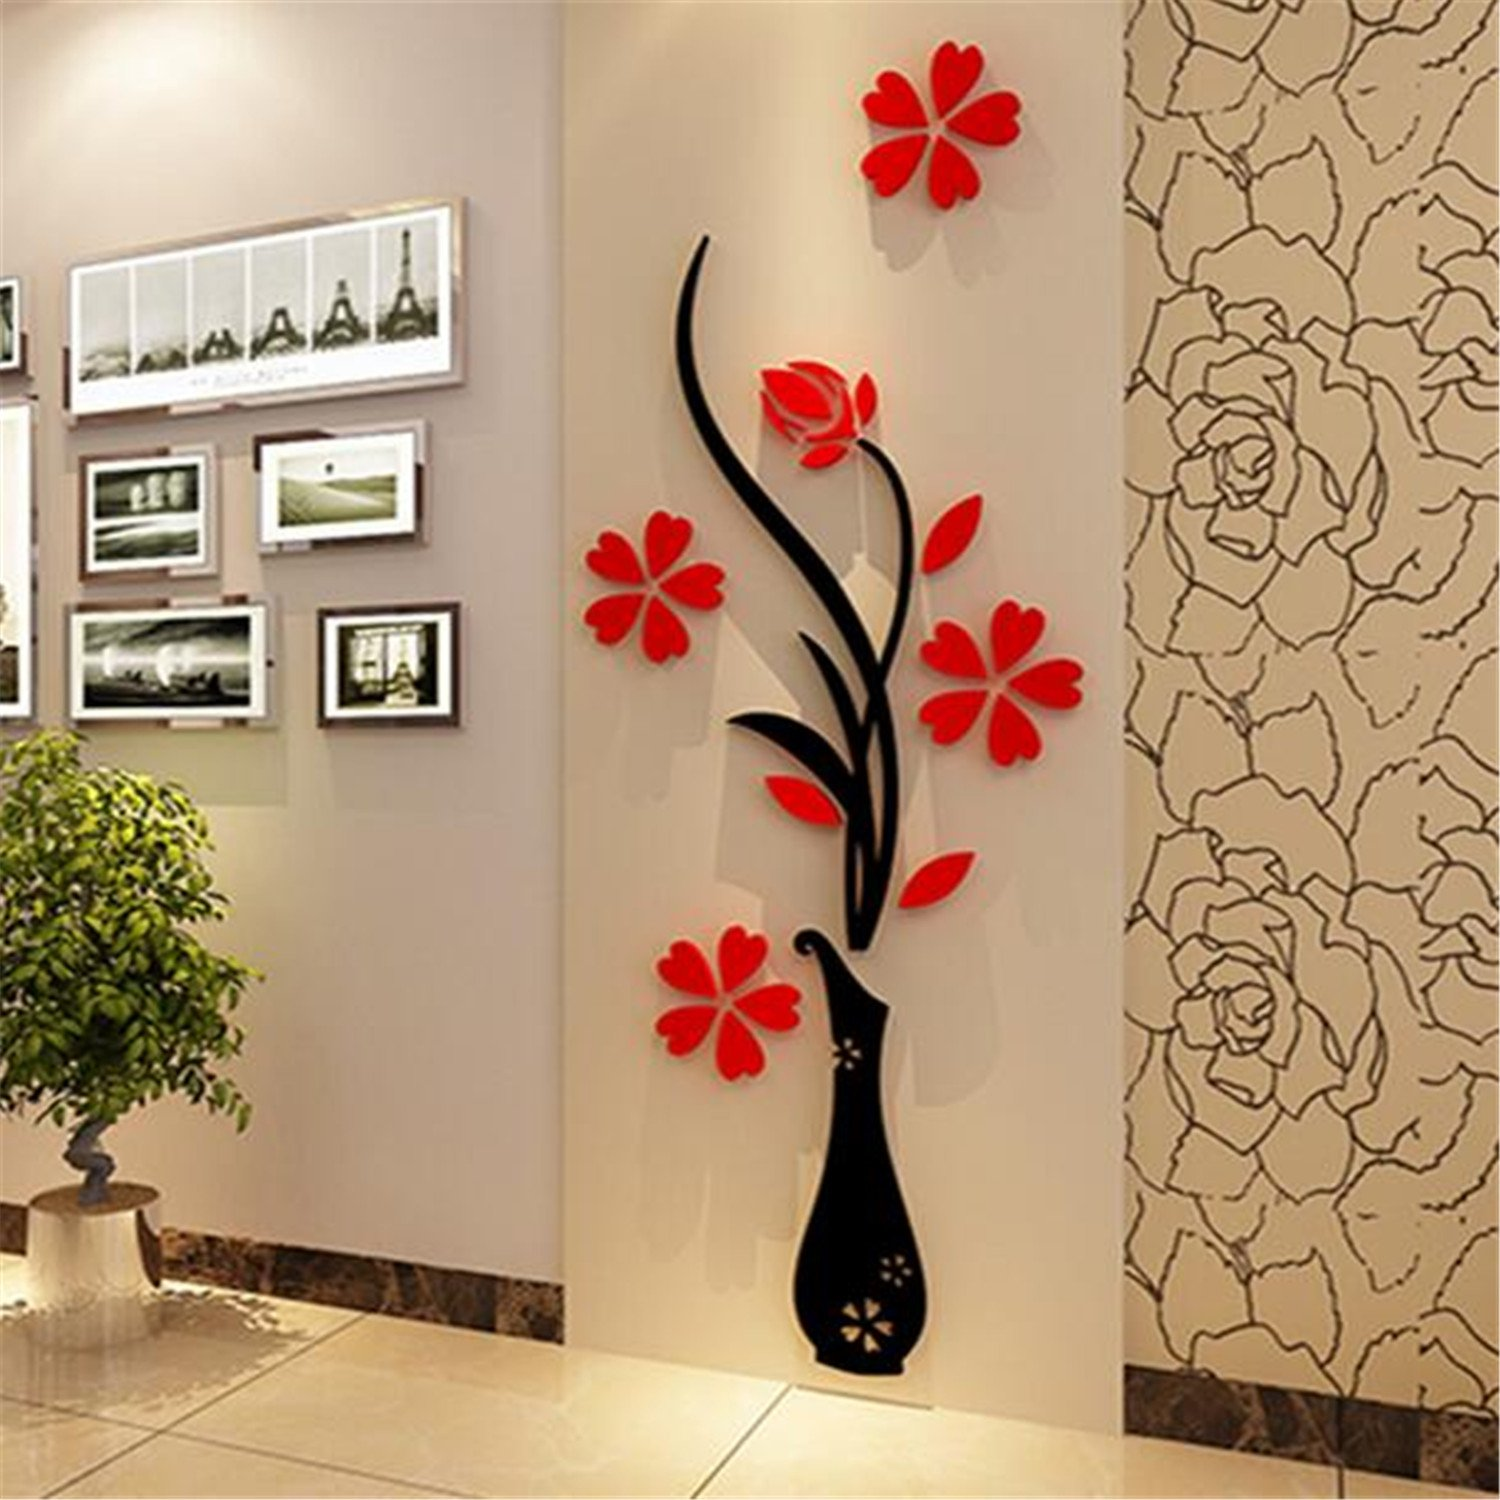 3d wall decor  Kays makehauk co